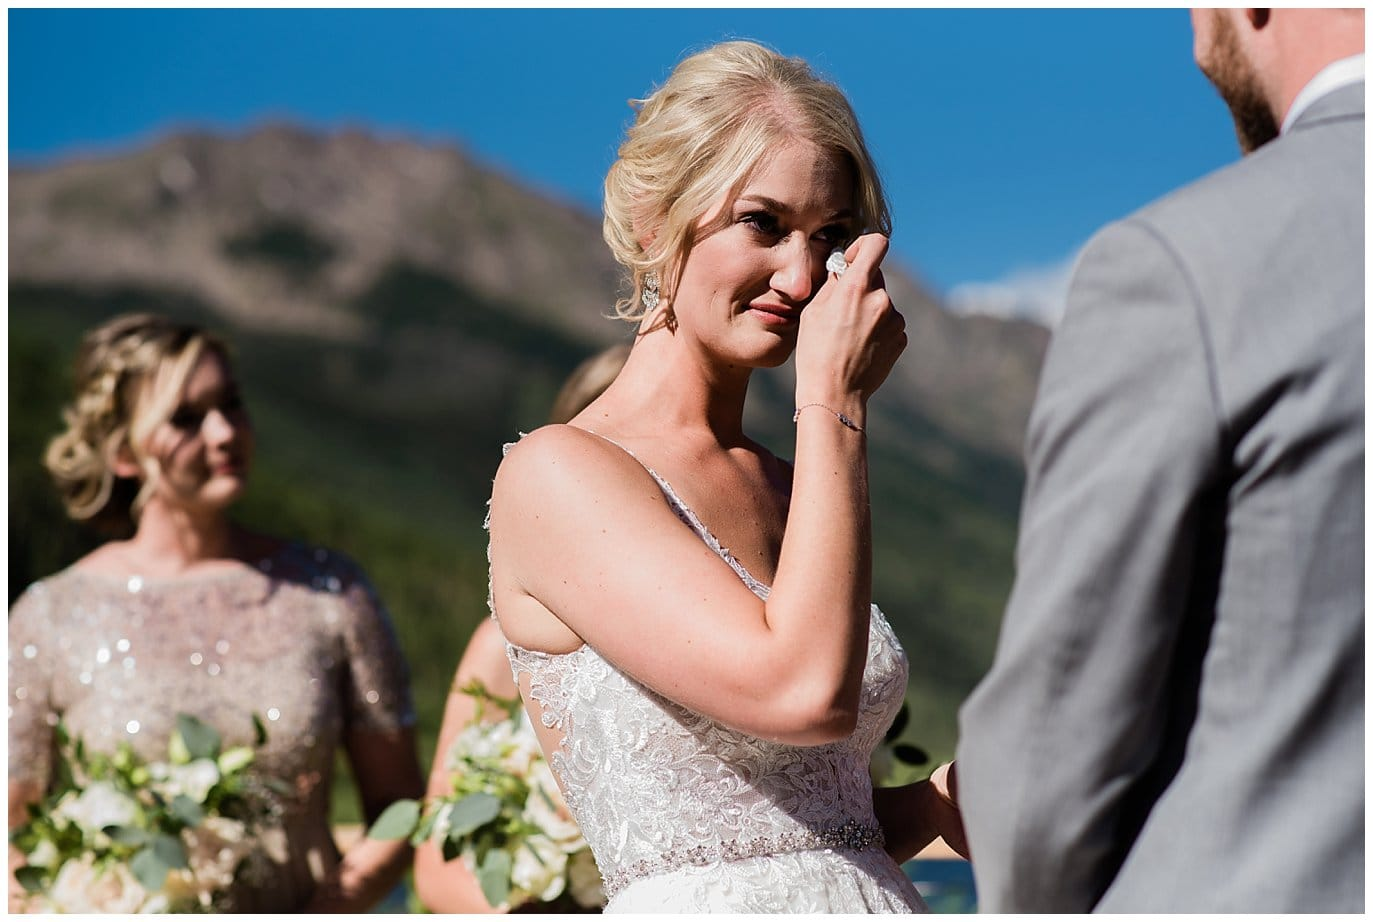 emotional bride during vows at Piney River Ranch wedding by Beaver Creek wedding photographer Jennie Crate, Photographer